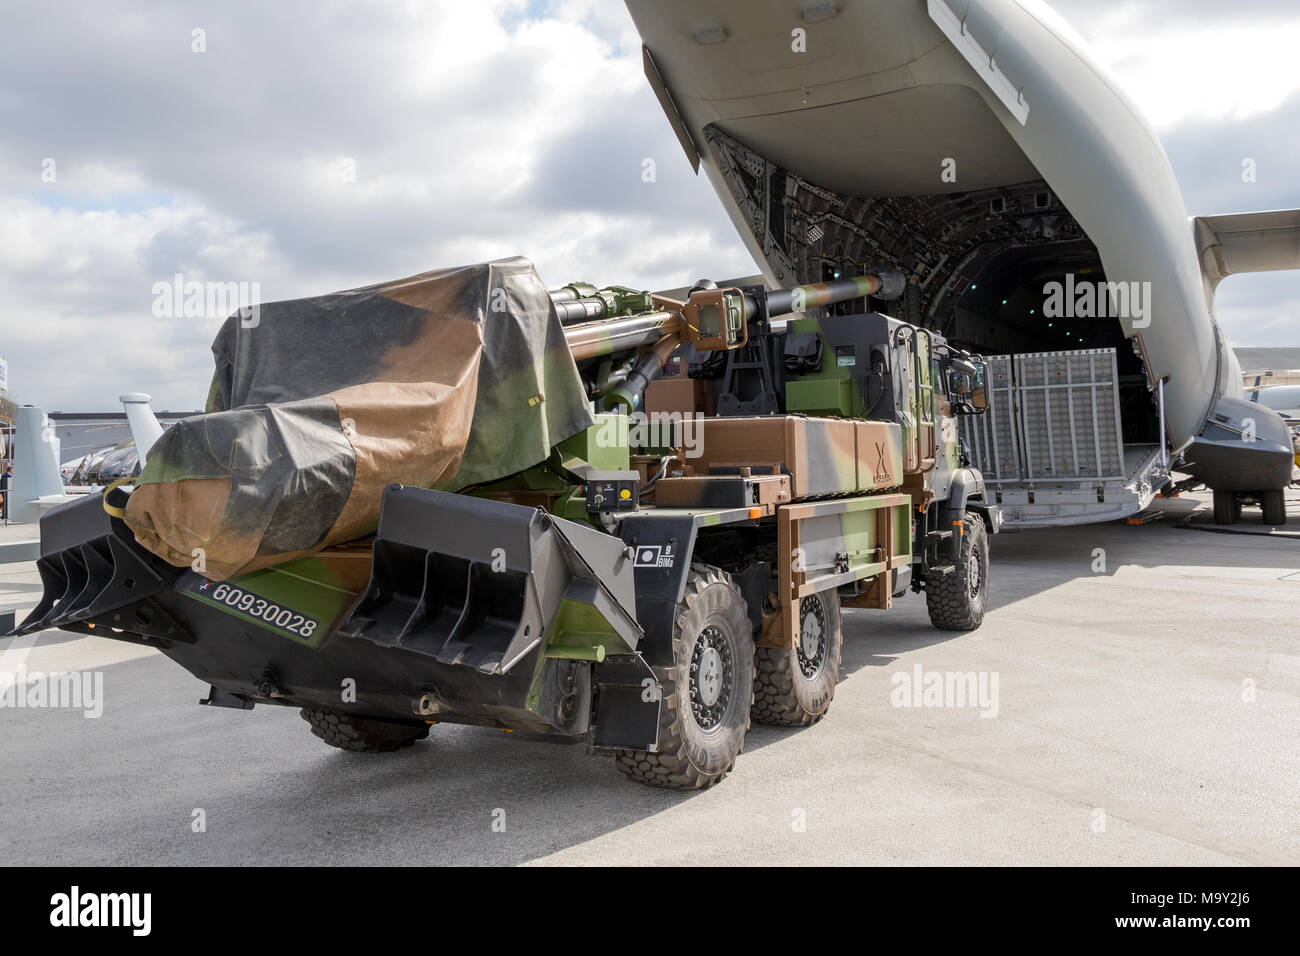 PARIS, FRANCE - JUN 23, 2017: Artillery truck in front of the loading door of an Airbus A400M military transport plane on display at the Paris Air Sho - Stock Image